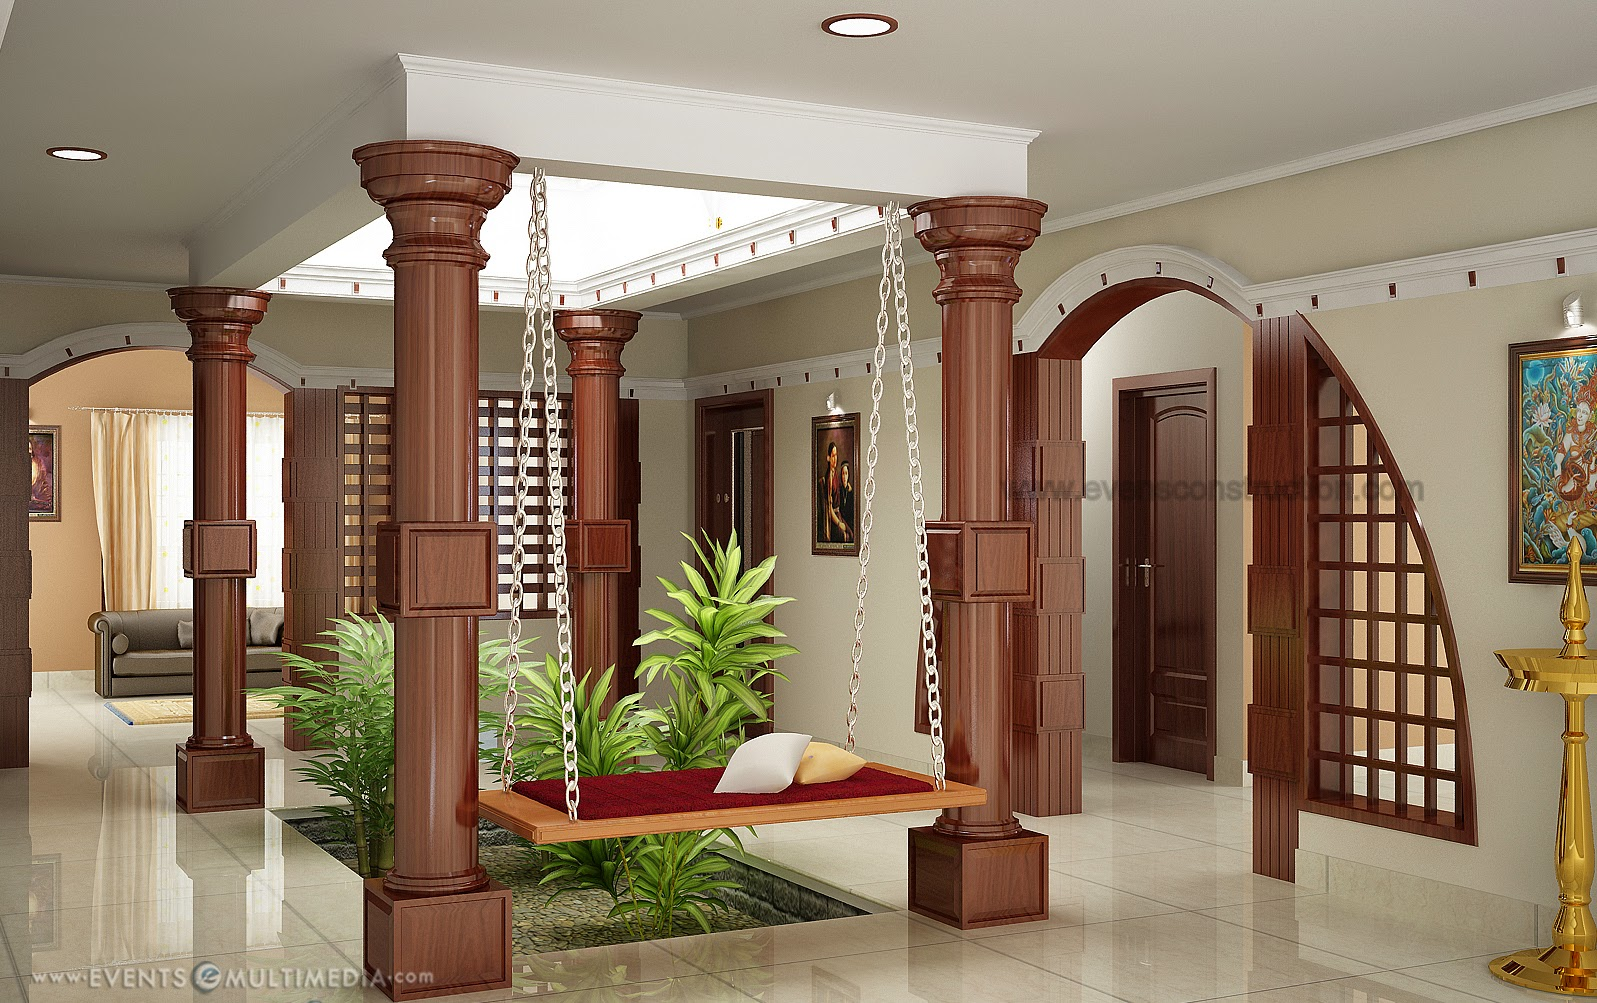 Evens construction pvt ltd courtyard for kerala house for Different interior designs of houses